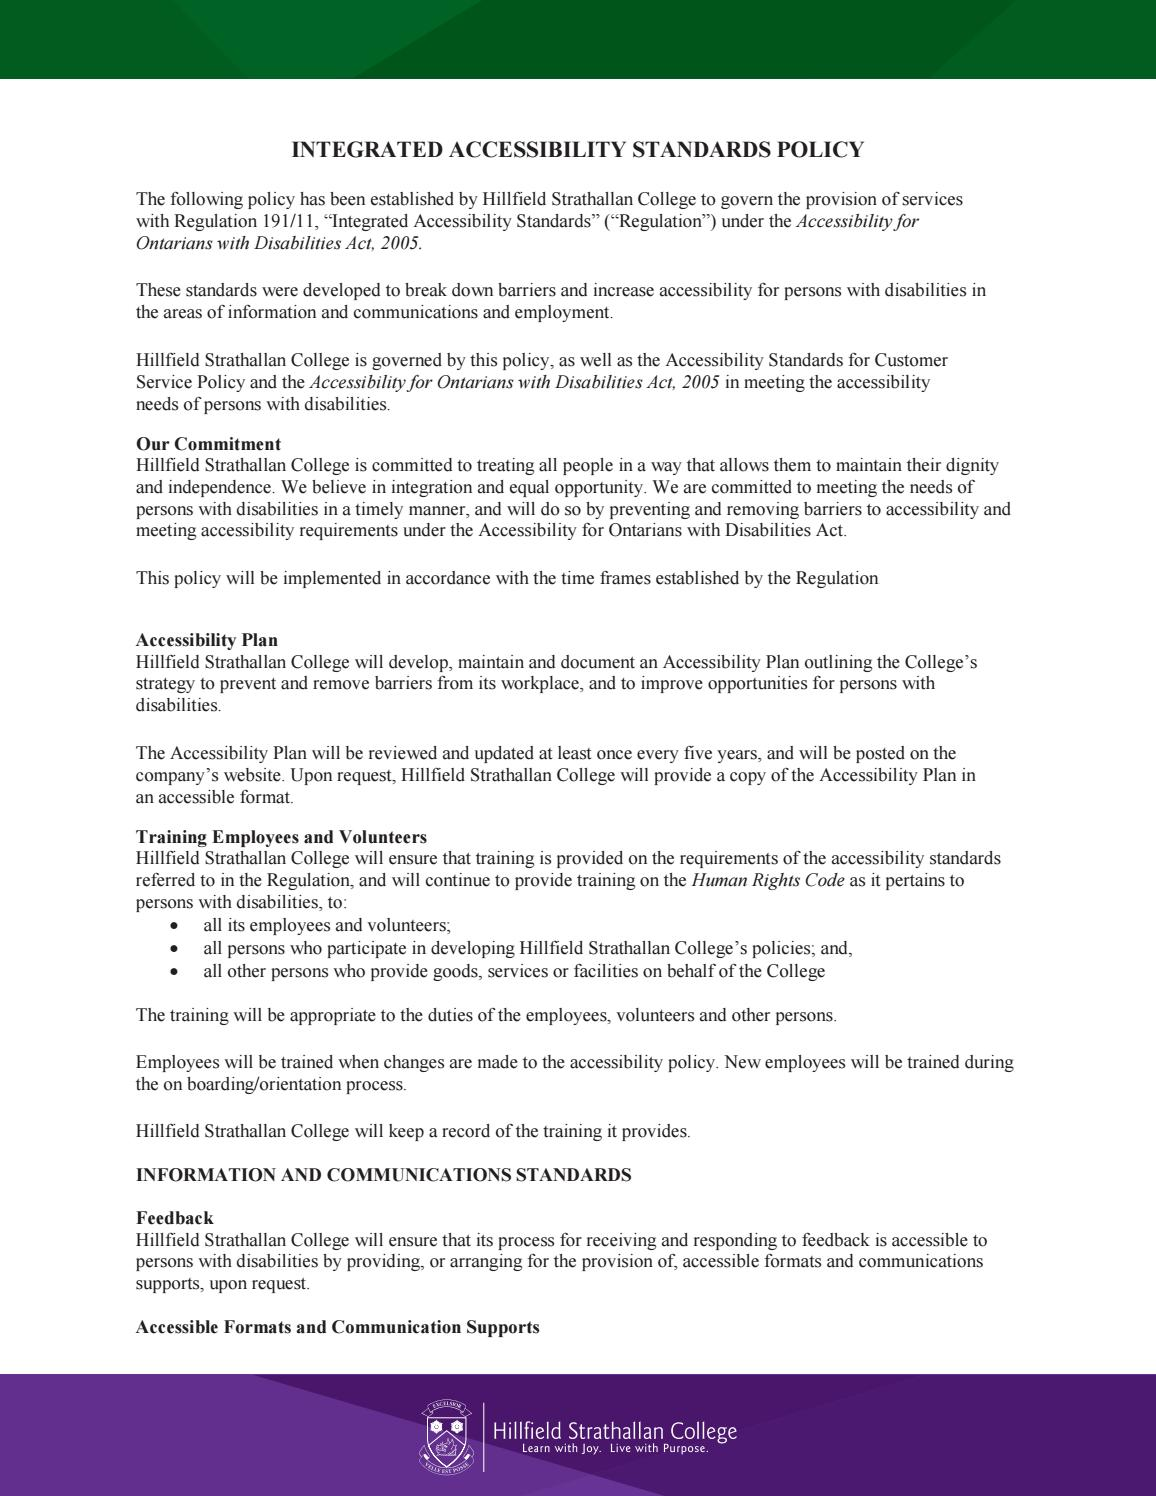 INTEGRATED ACCESSIBILITY STANDARDS POLICY by Hillfield